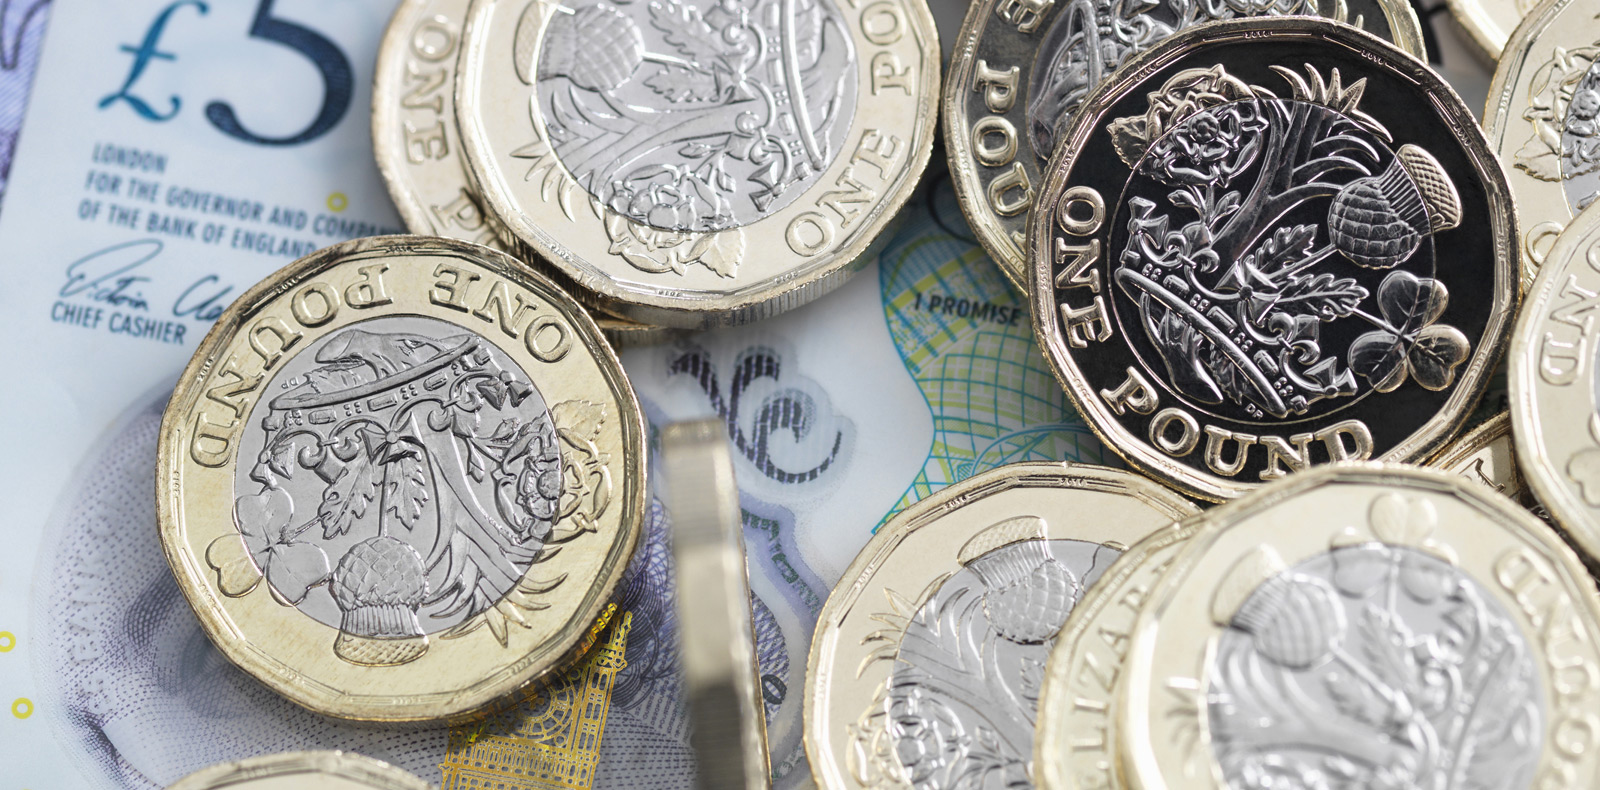 Sterling over the last 36 hours has seen an uptrend after falling to new lows against the euro and US dollar.